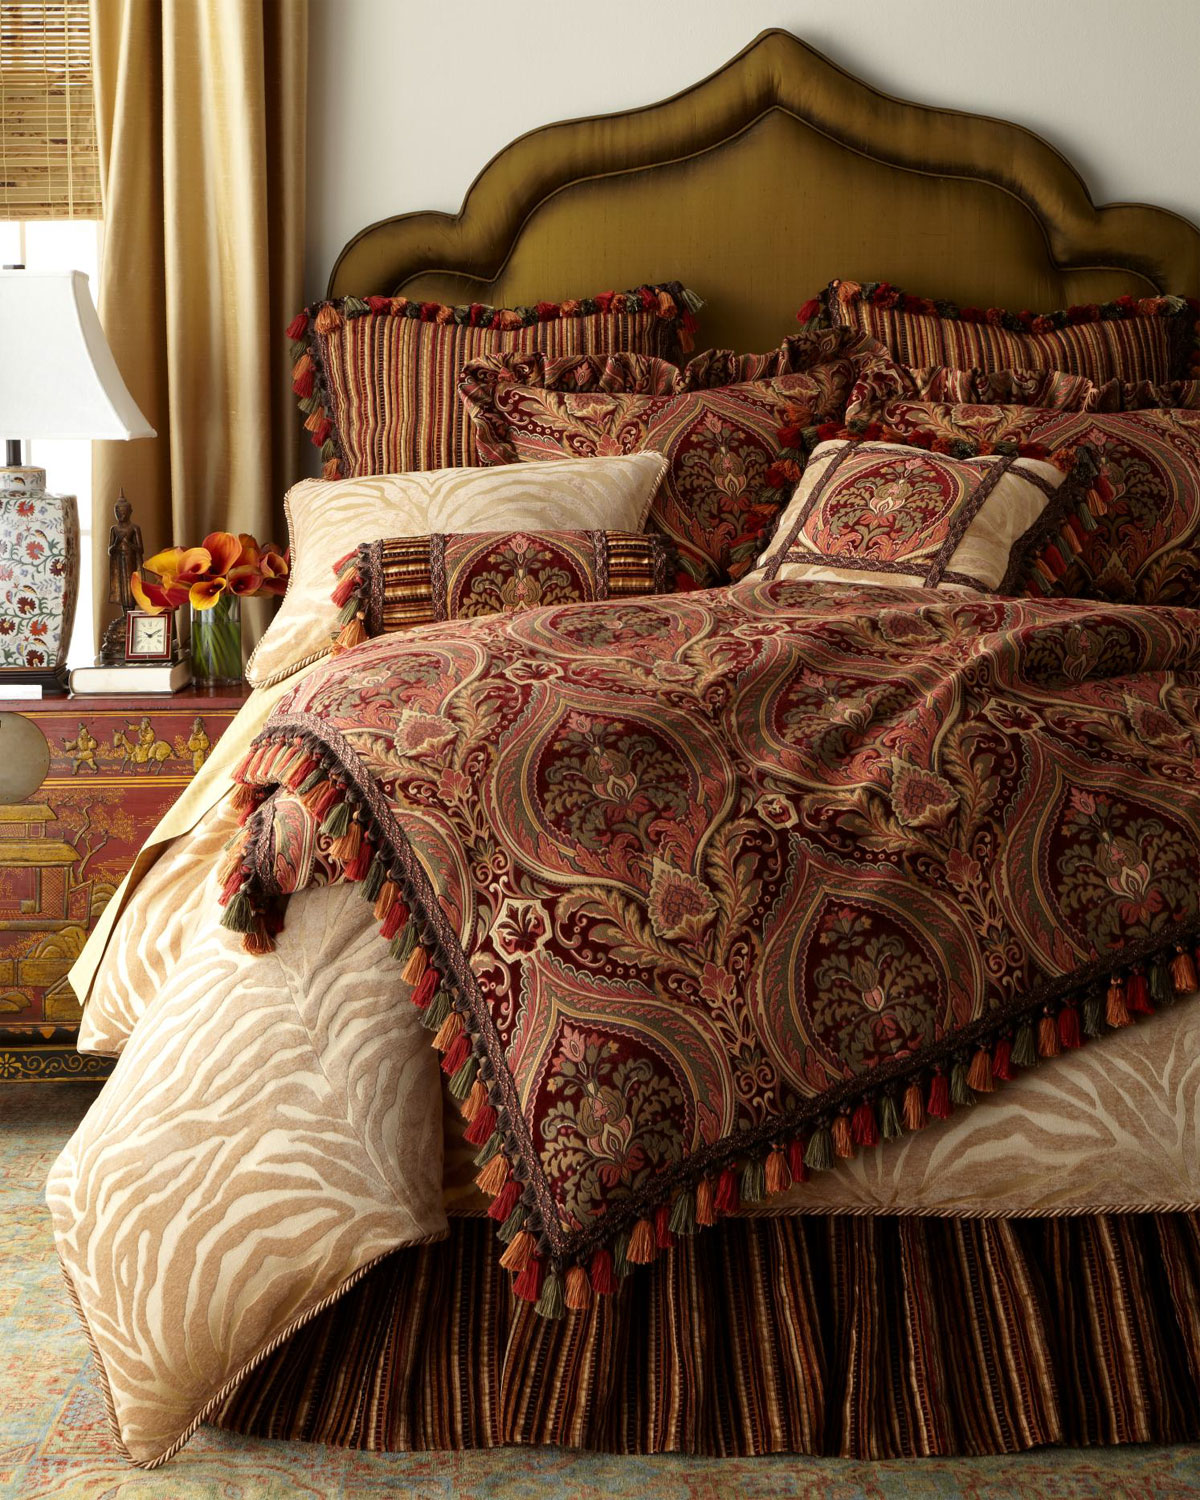 Persia by Isabella Luxury Linens